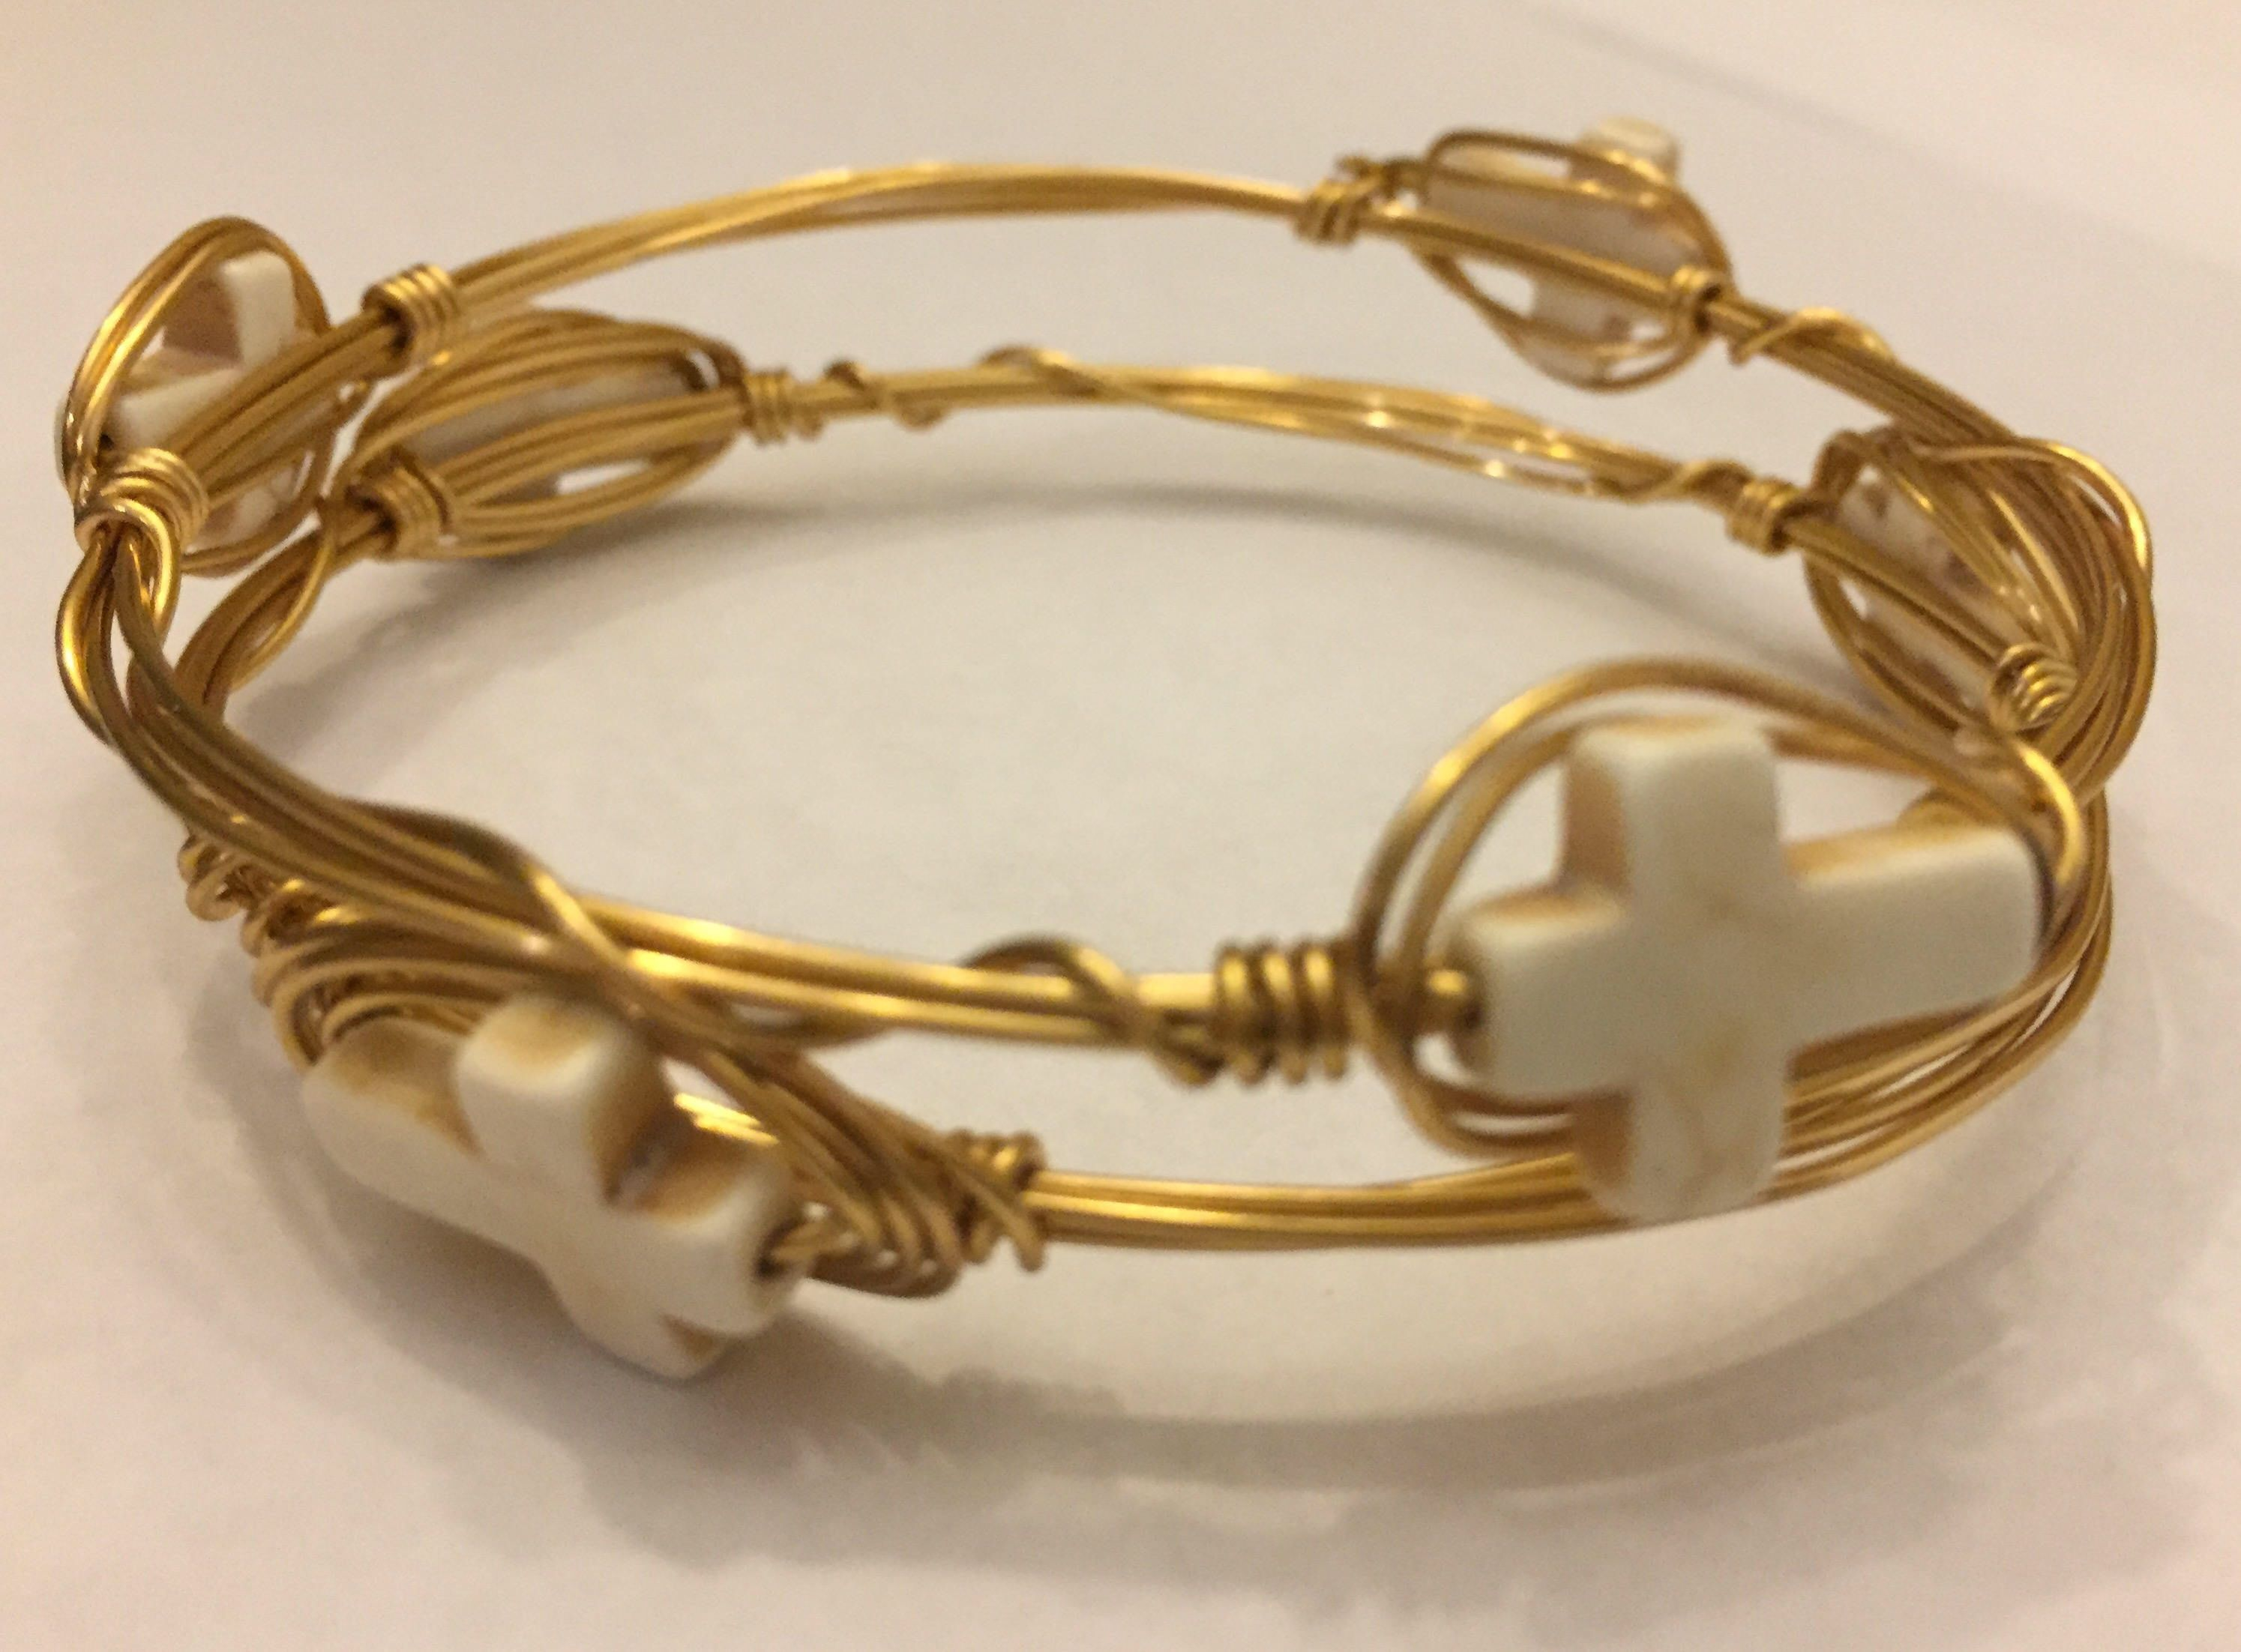 vuitton charm bracelets louis jewelry gold bracelet women s bangles bangle white